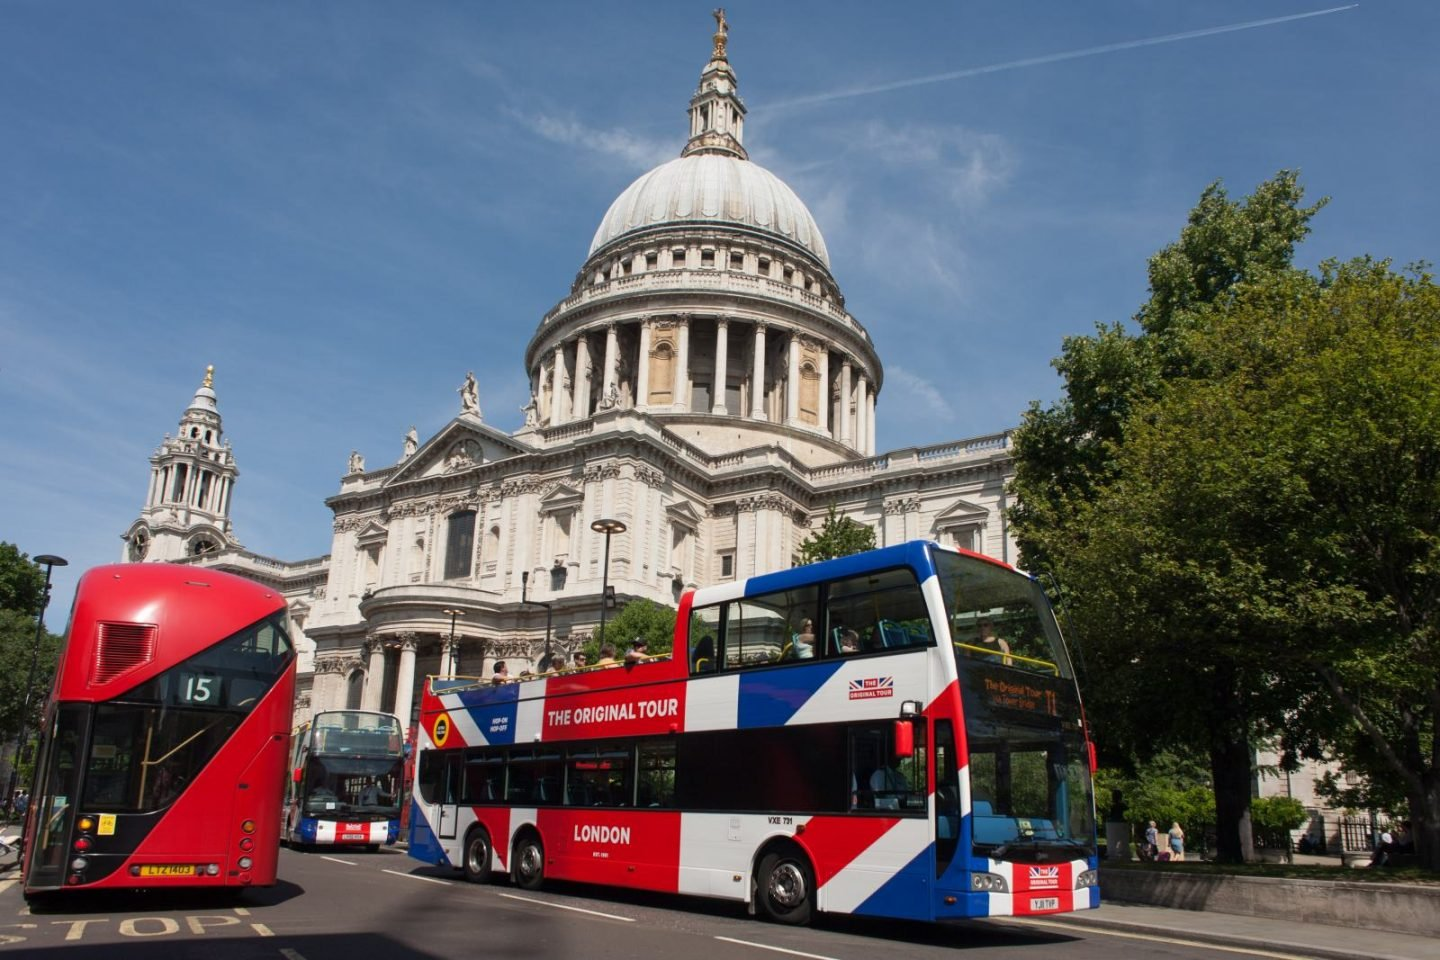 Finding The Best London Bus Tour is a case of knowing what attractions you want to see in London and planning your route with a map.